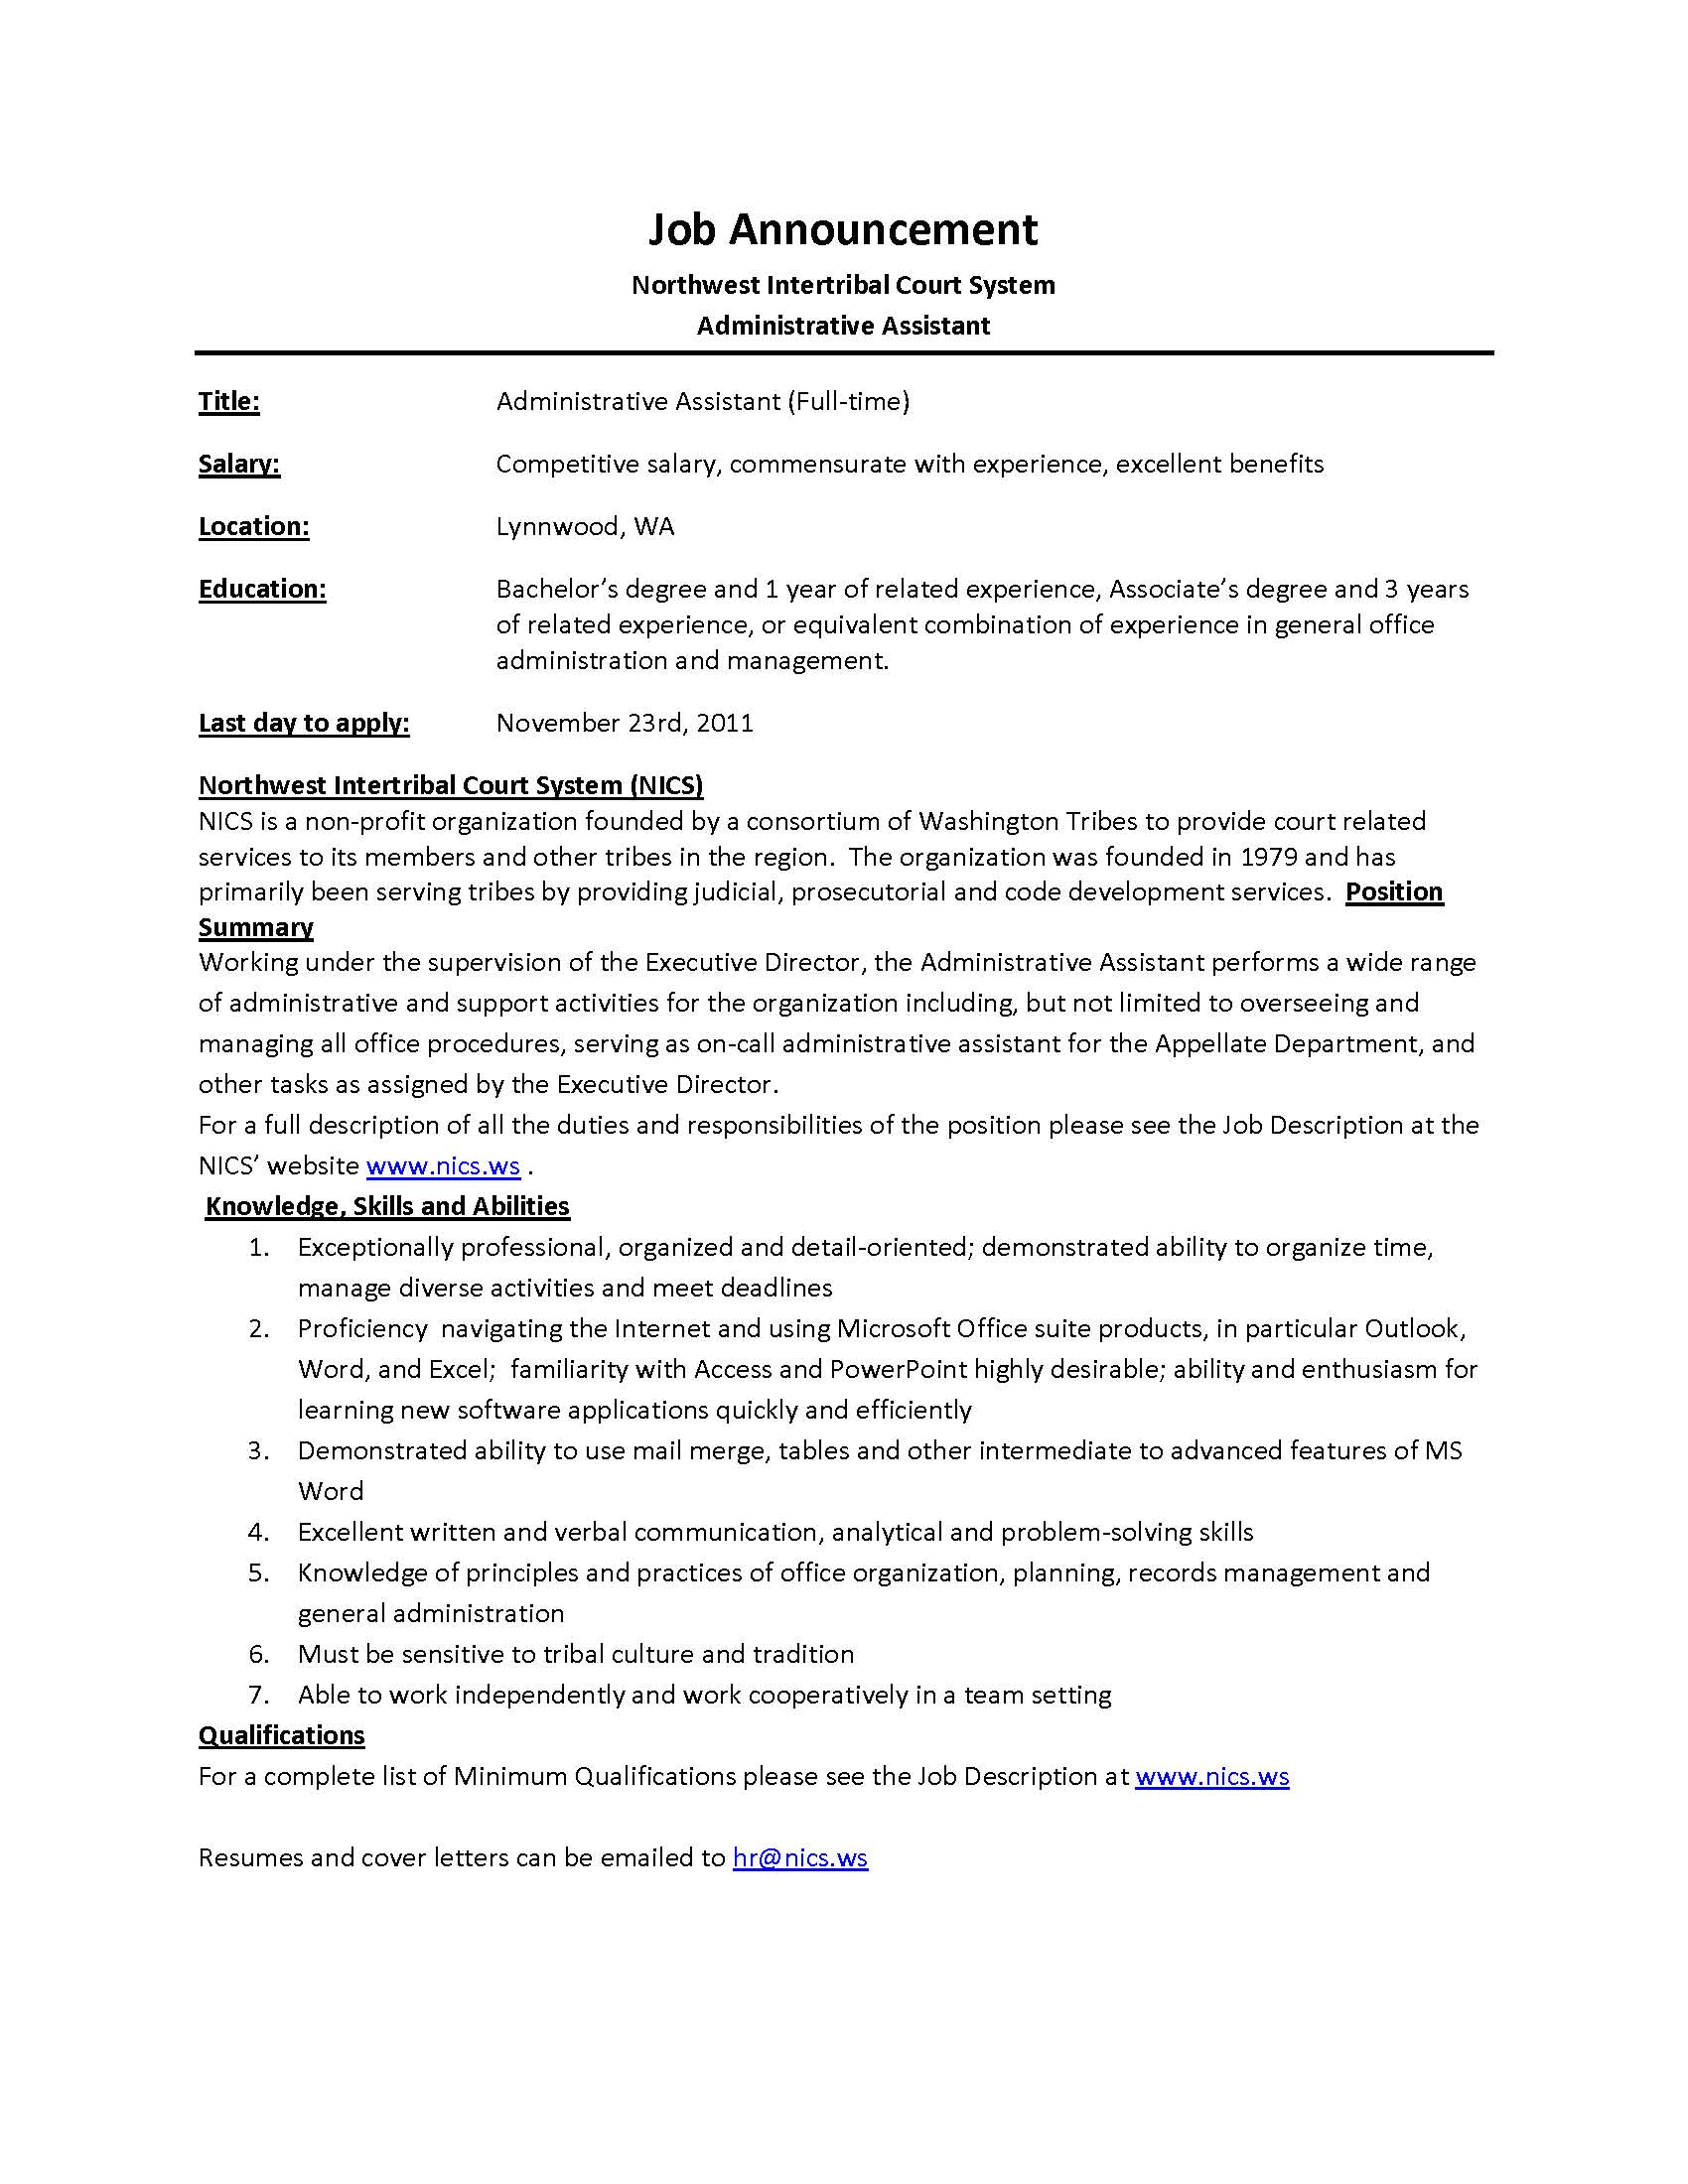 administrative assistant job description office sample job announcement nics admin assistant administrative assistant sample job description can assist